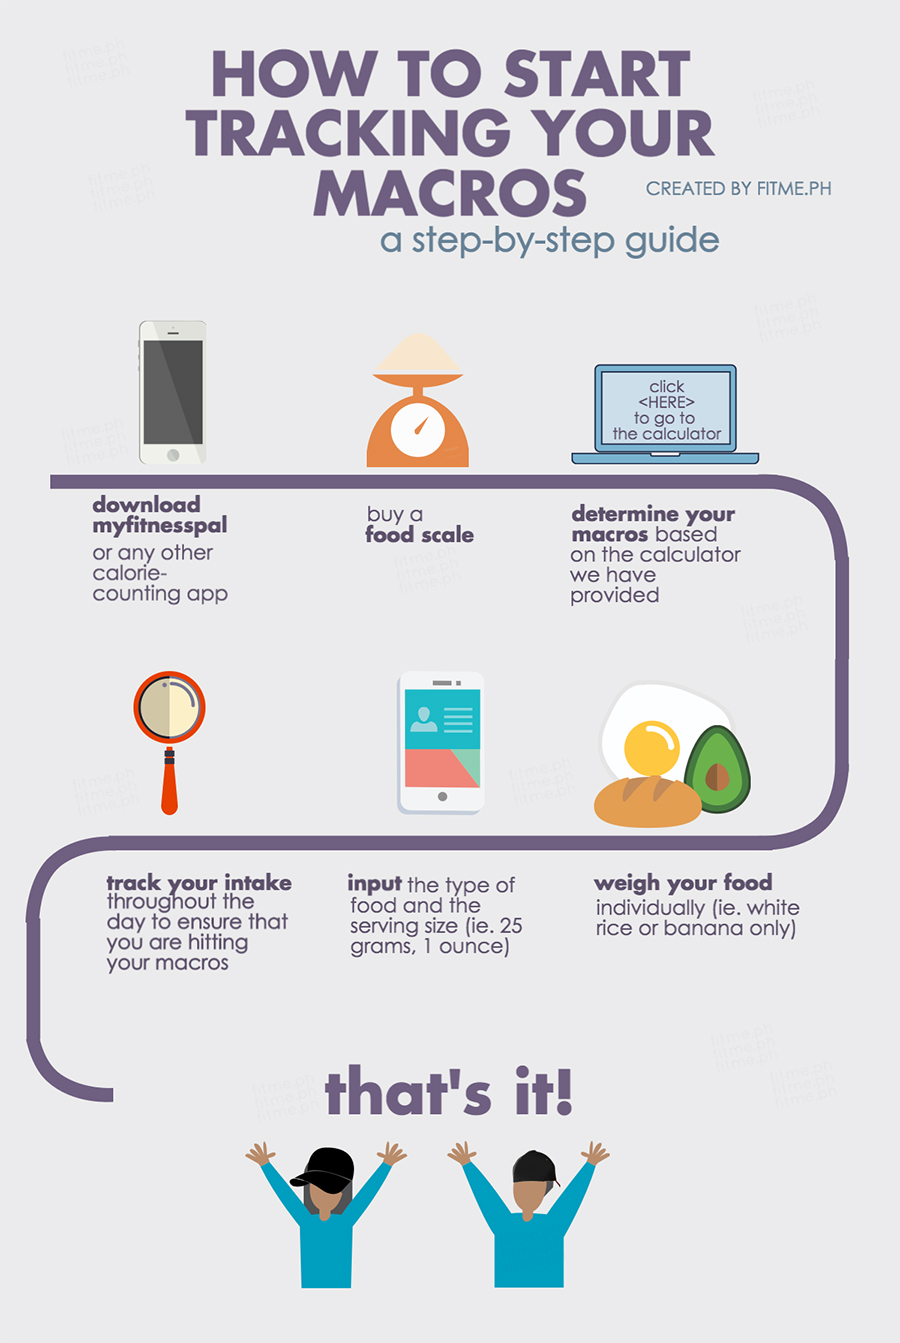 how to track macros infographic